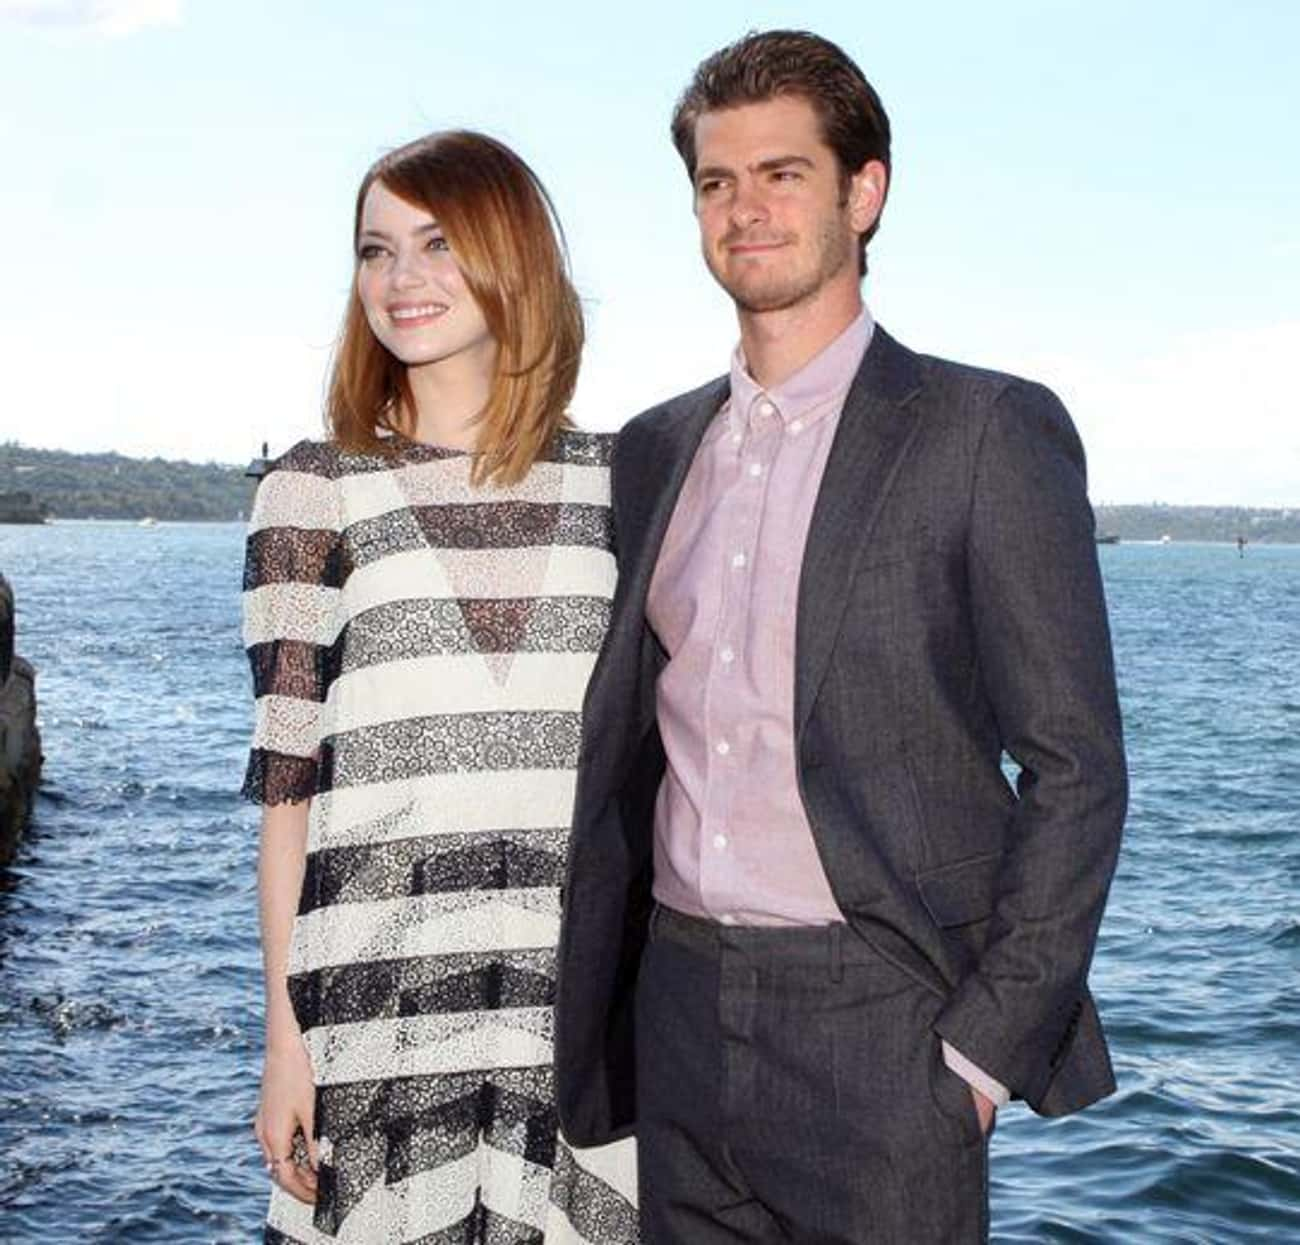 Emma Stone And Andrew Garfield Hold Up Signs Promoting Charities